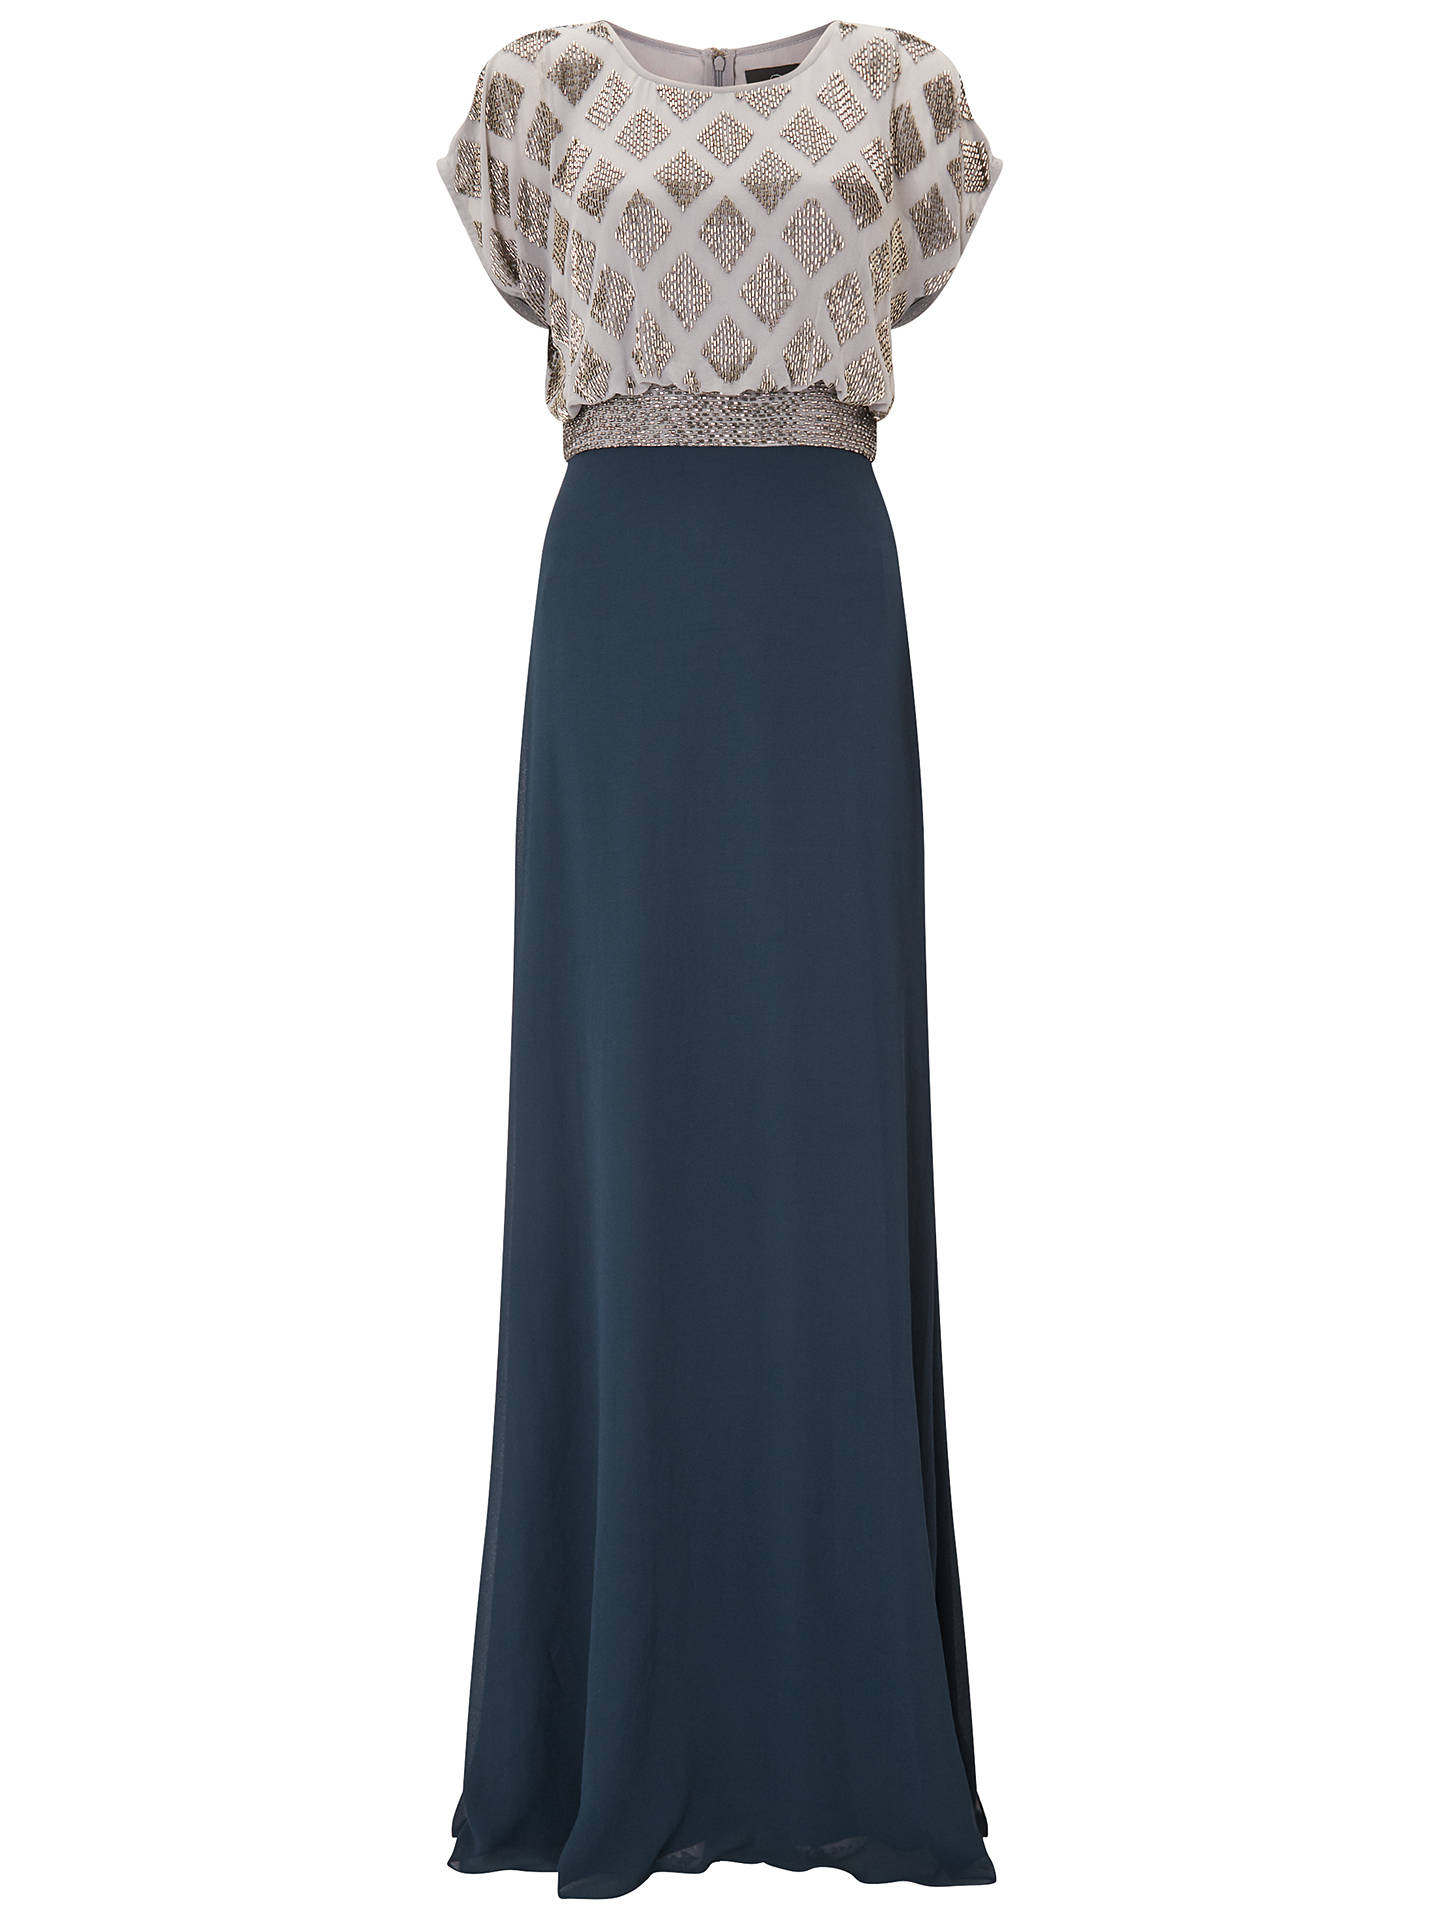 576b59c279bb ... Buy Adrianna Papell Plus Size Long Beaded Lace Bodice Dress,  Silver/Navy, 18